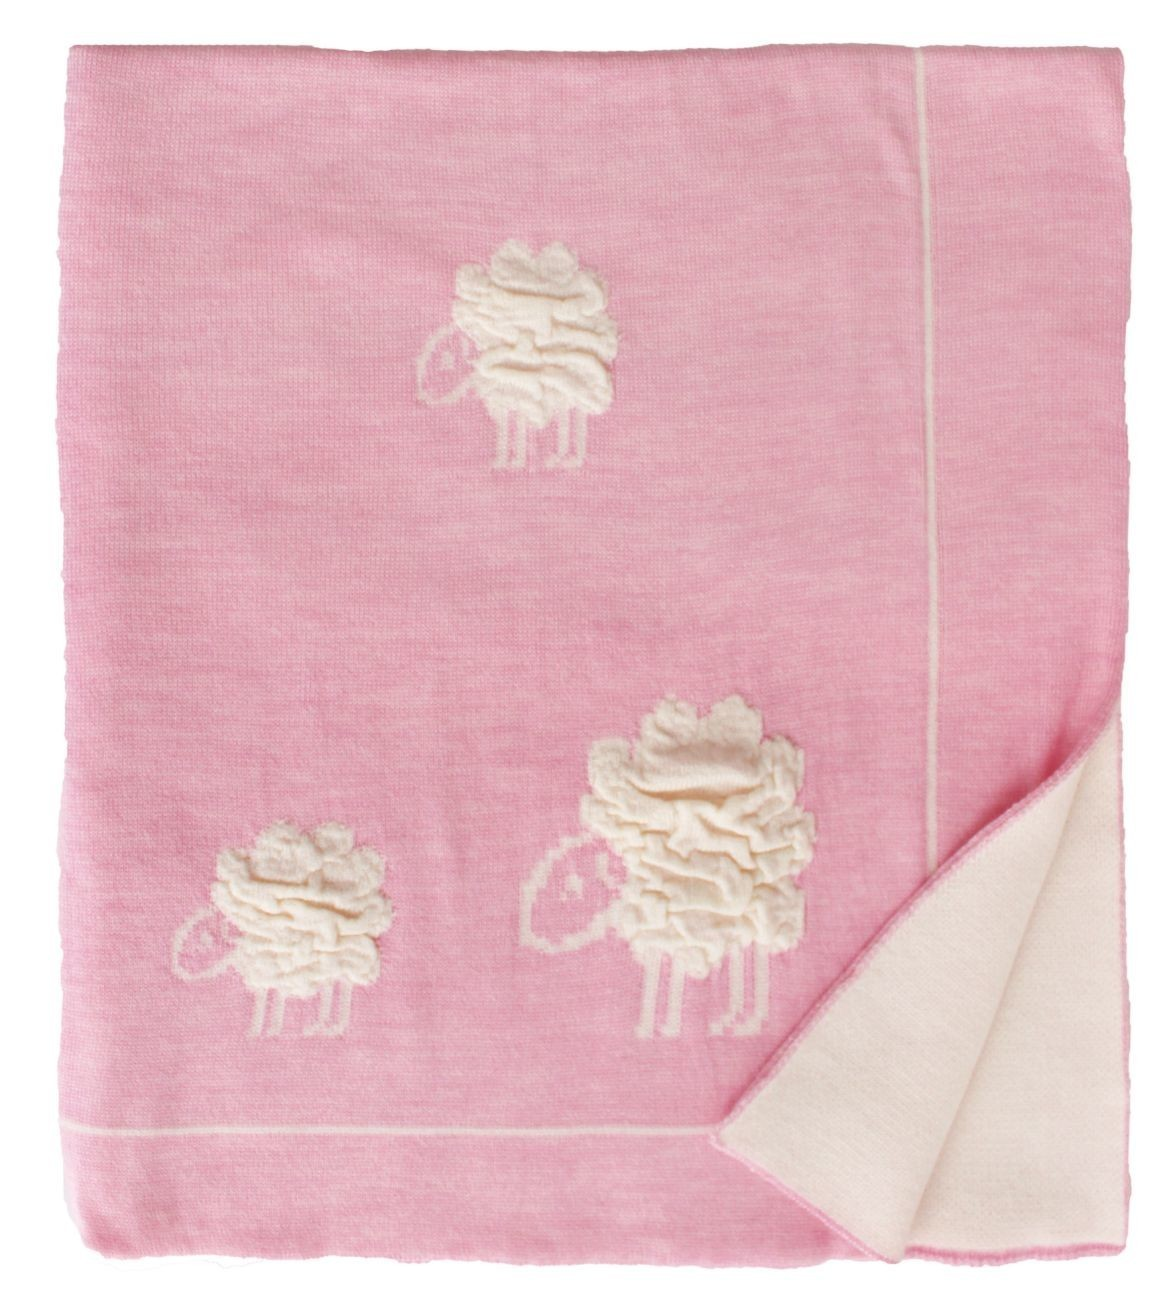 Eagle Products Wolly Babyplaid aus Schurwolle EAG-15285-2